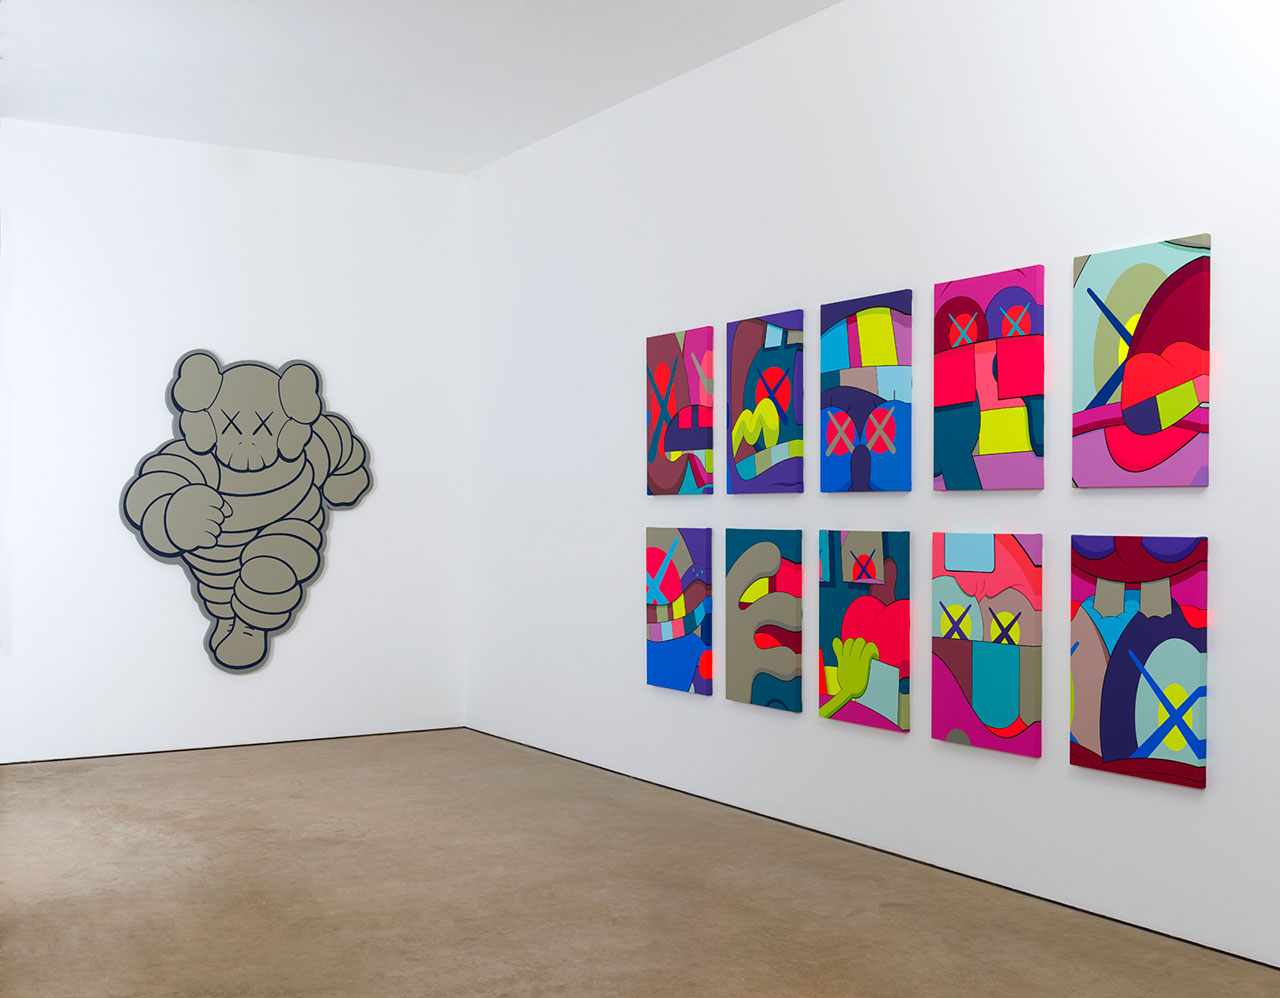 CHUM (left), 2012. Courtesy the artist and YSP Acrylic on canvas over panel. H213cm x W173cm x D4.5cm. UPS AND DOWNS (right), 2012. Courtesy the artist and YSP Acrylic on canvas 10 parts, each part: H88.9cm x W58.4cm. Photos © Jonty Wilde.